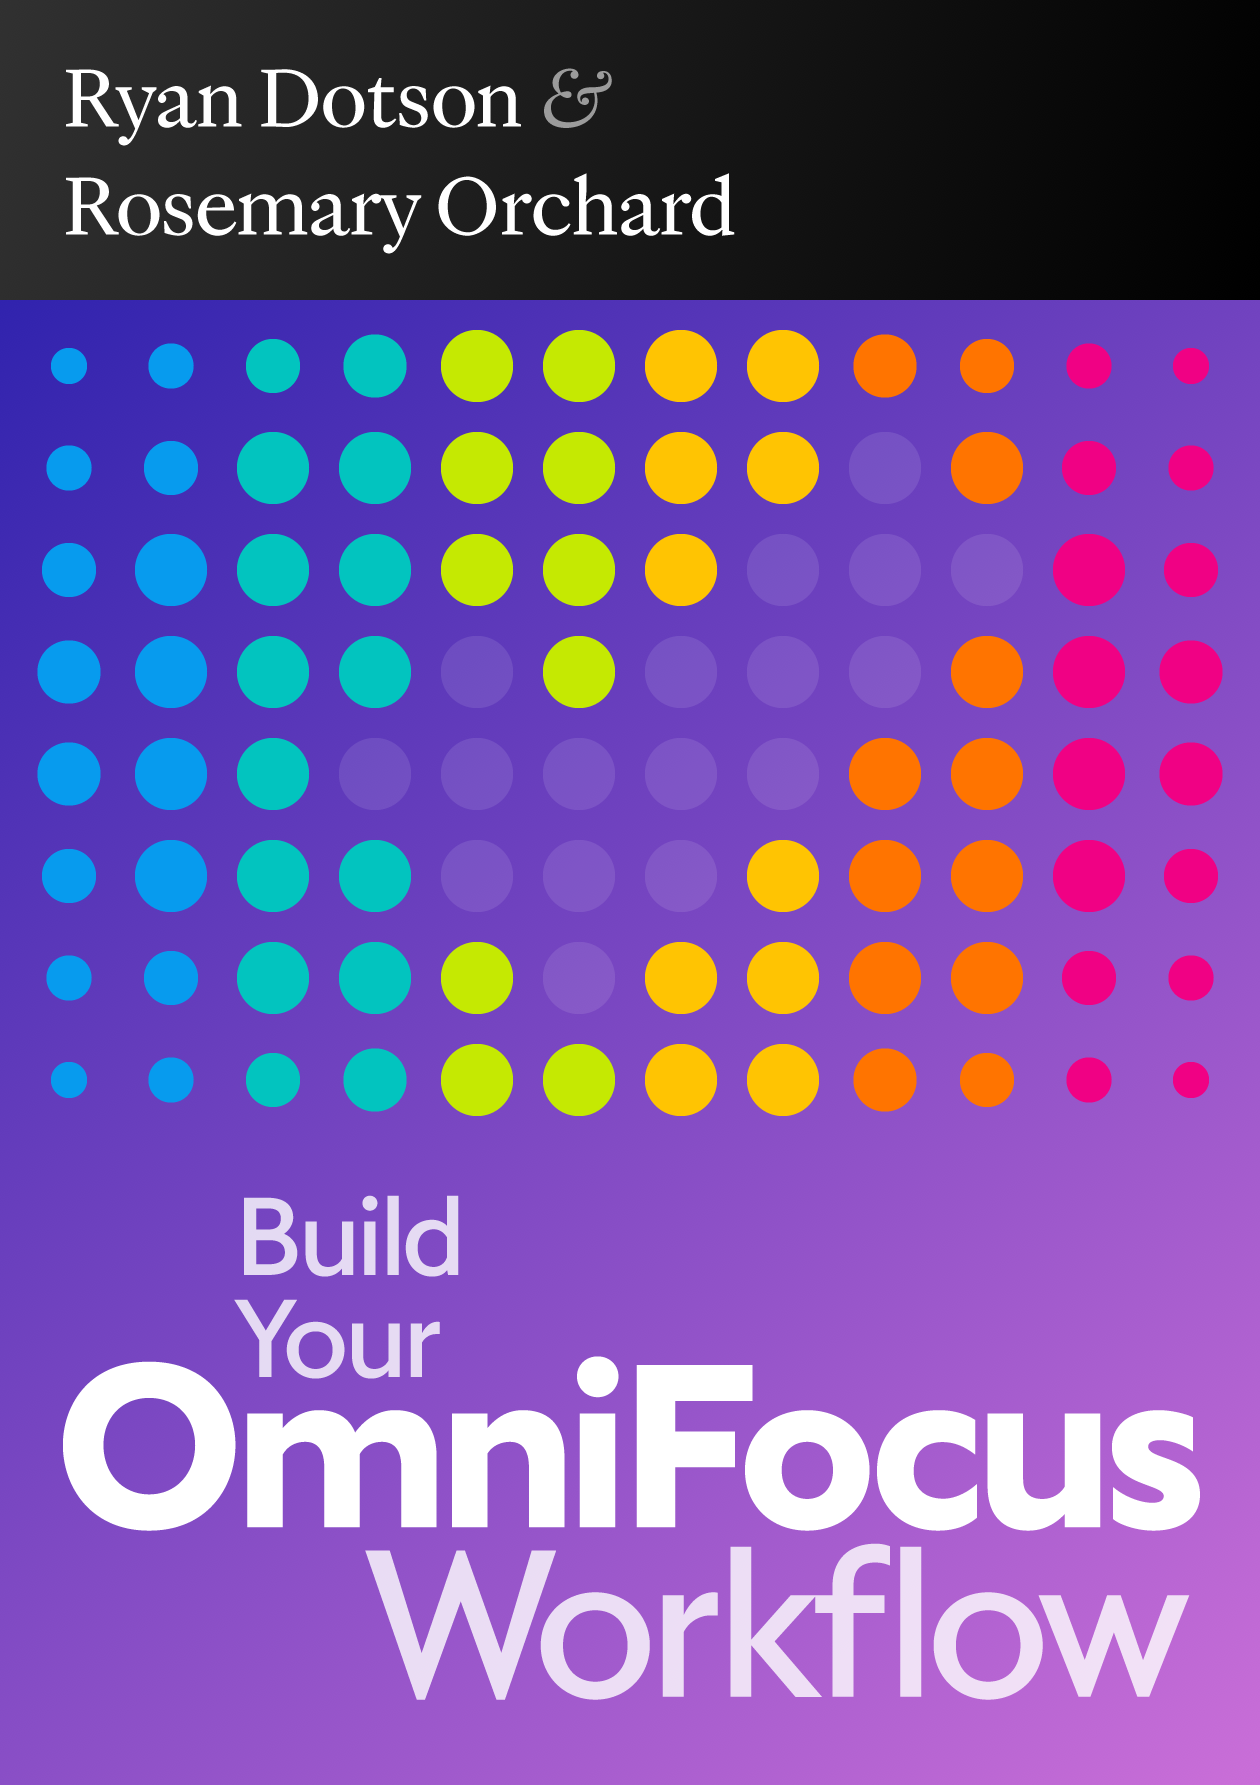 Announcement: Build Your OmniFocus Workflow – Rosemary Orchard